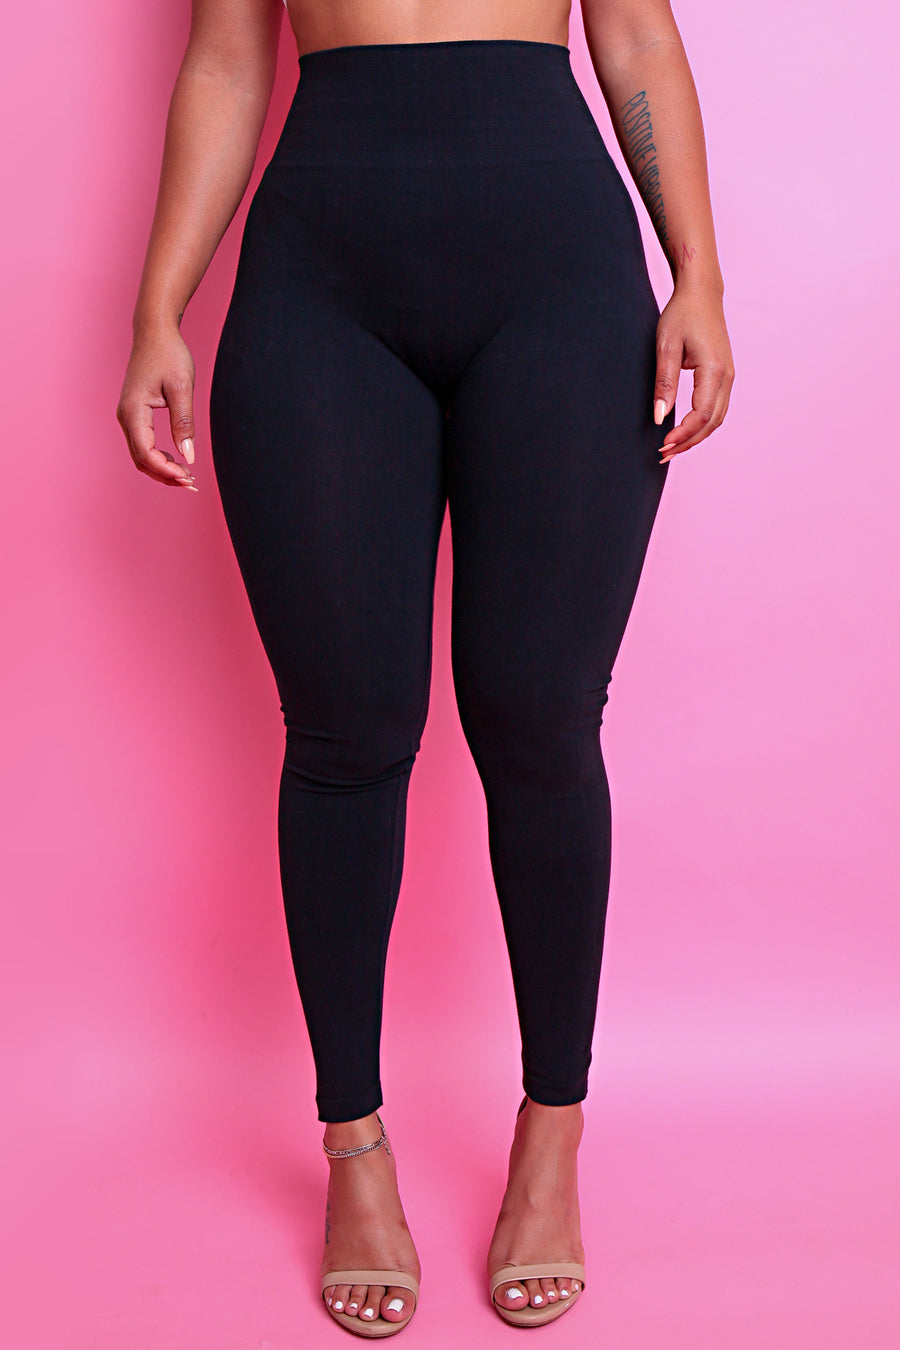 The Black Cotton Tummy Control Legging (fits up to Plus) - Babes And Felines | Specializing in Fashionable Staple Pieces for Every Shape and Size